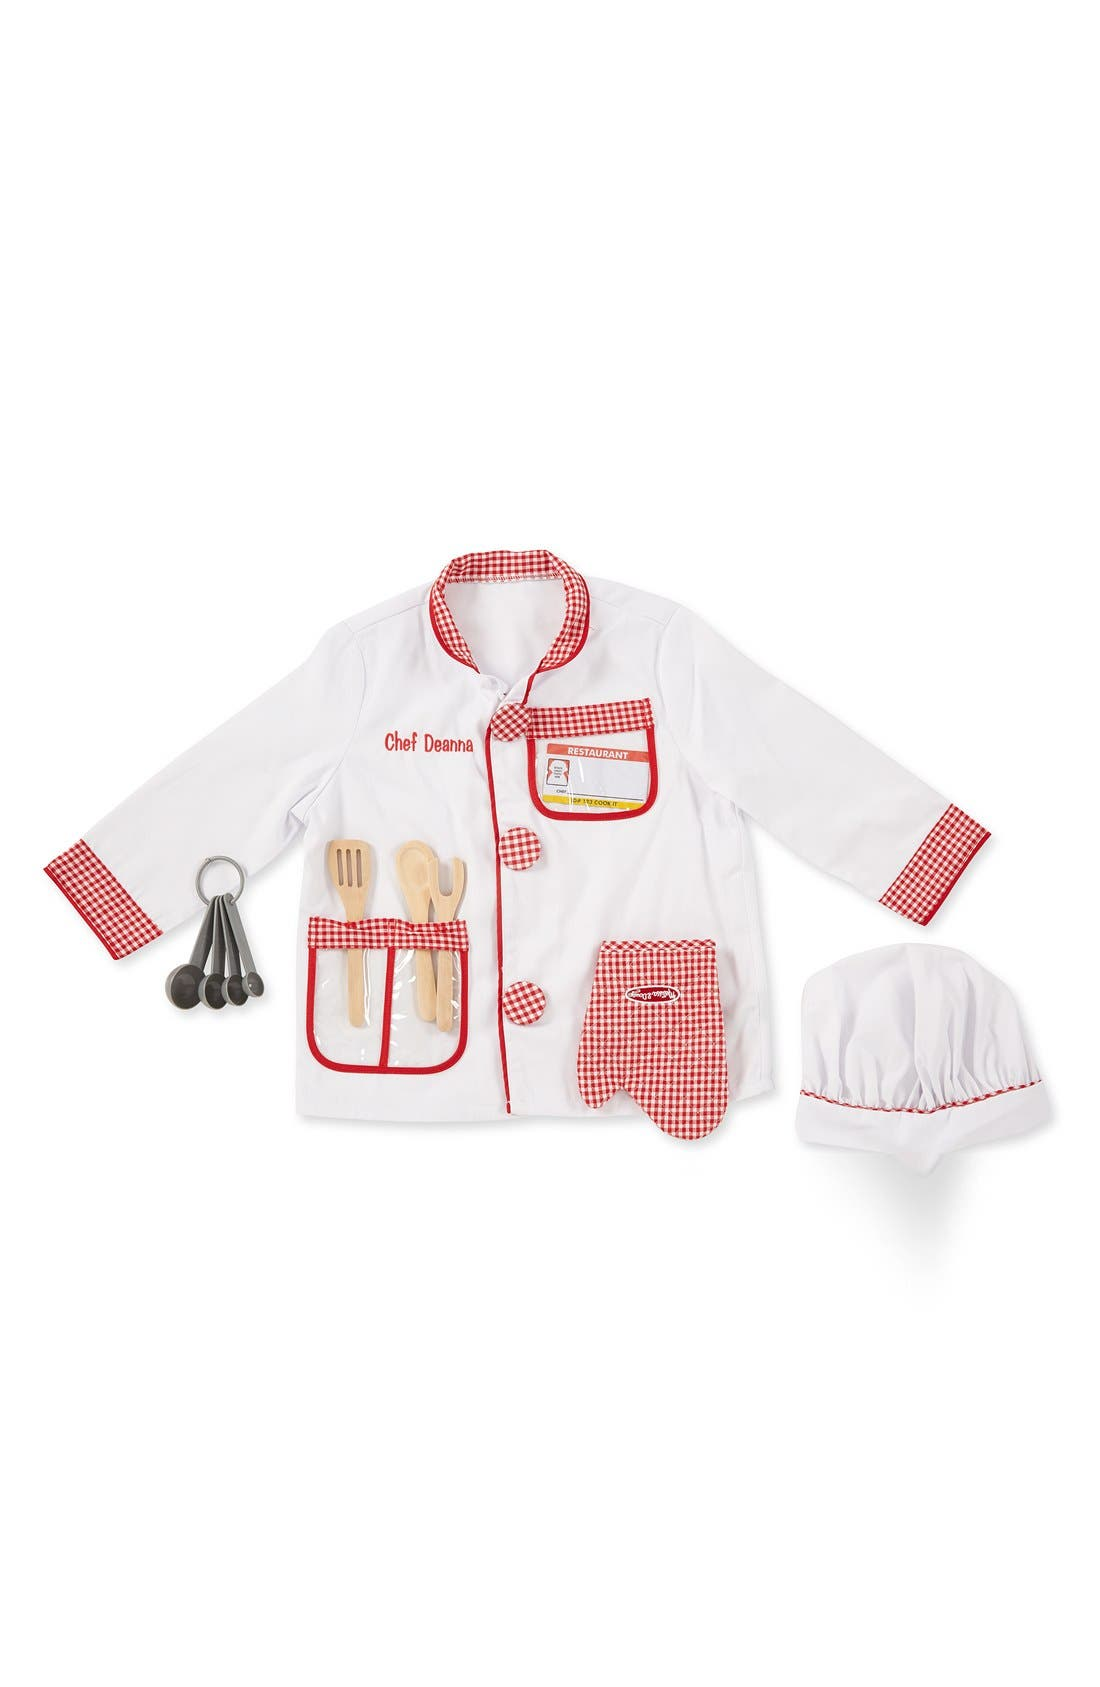 MELISSA & DOUG 'Chef' Personalized Costume Set